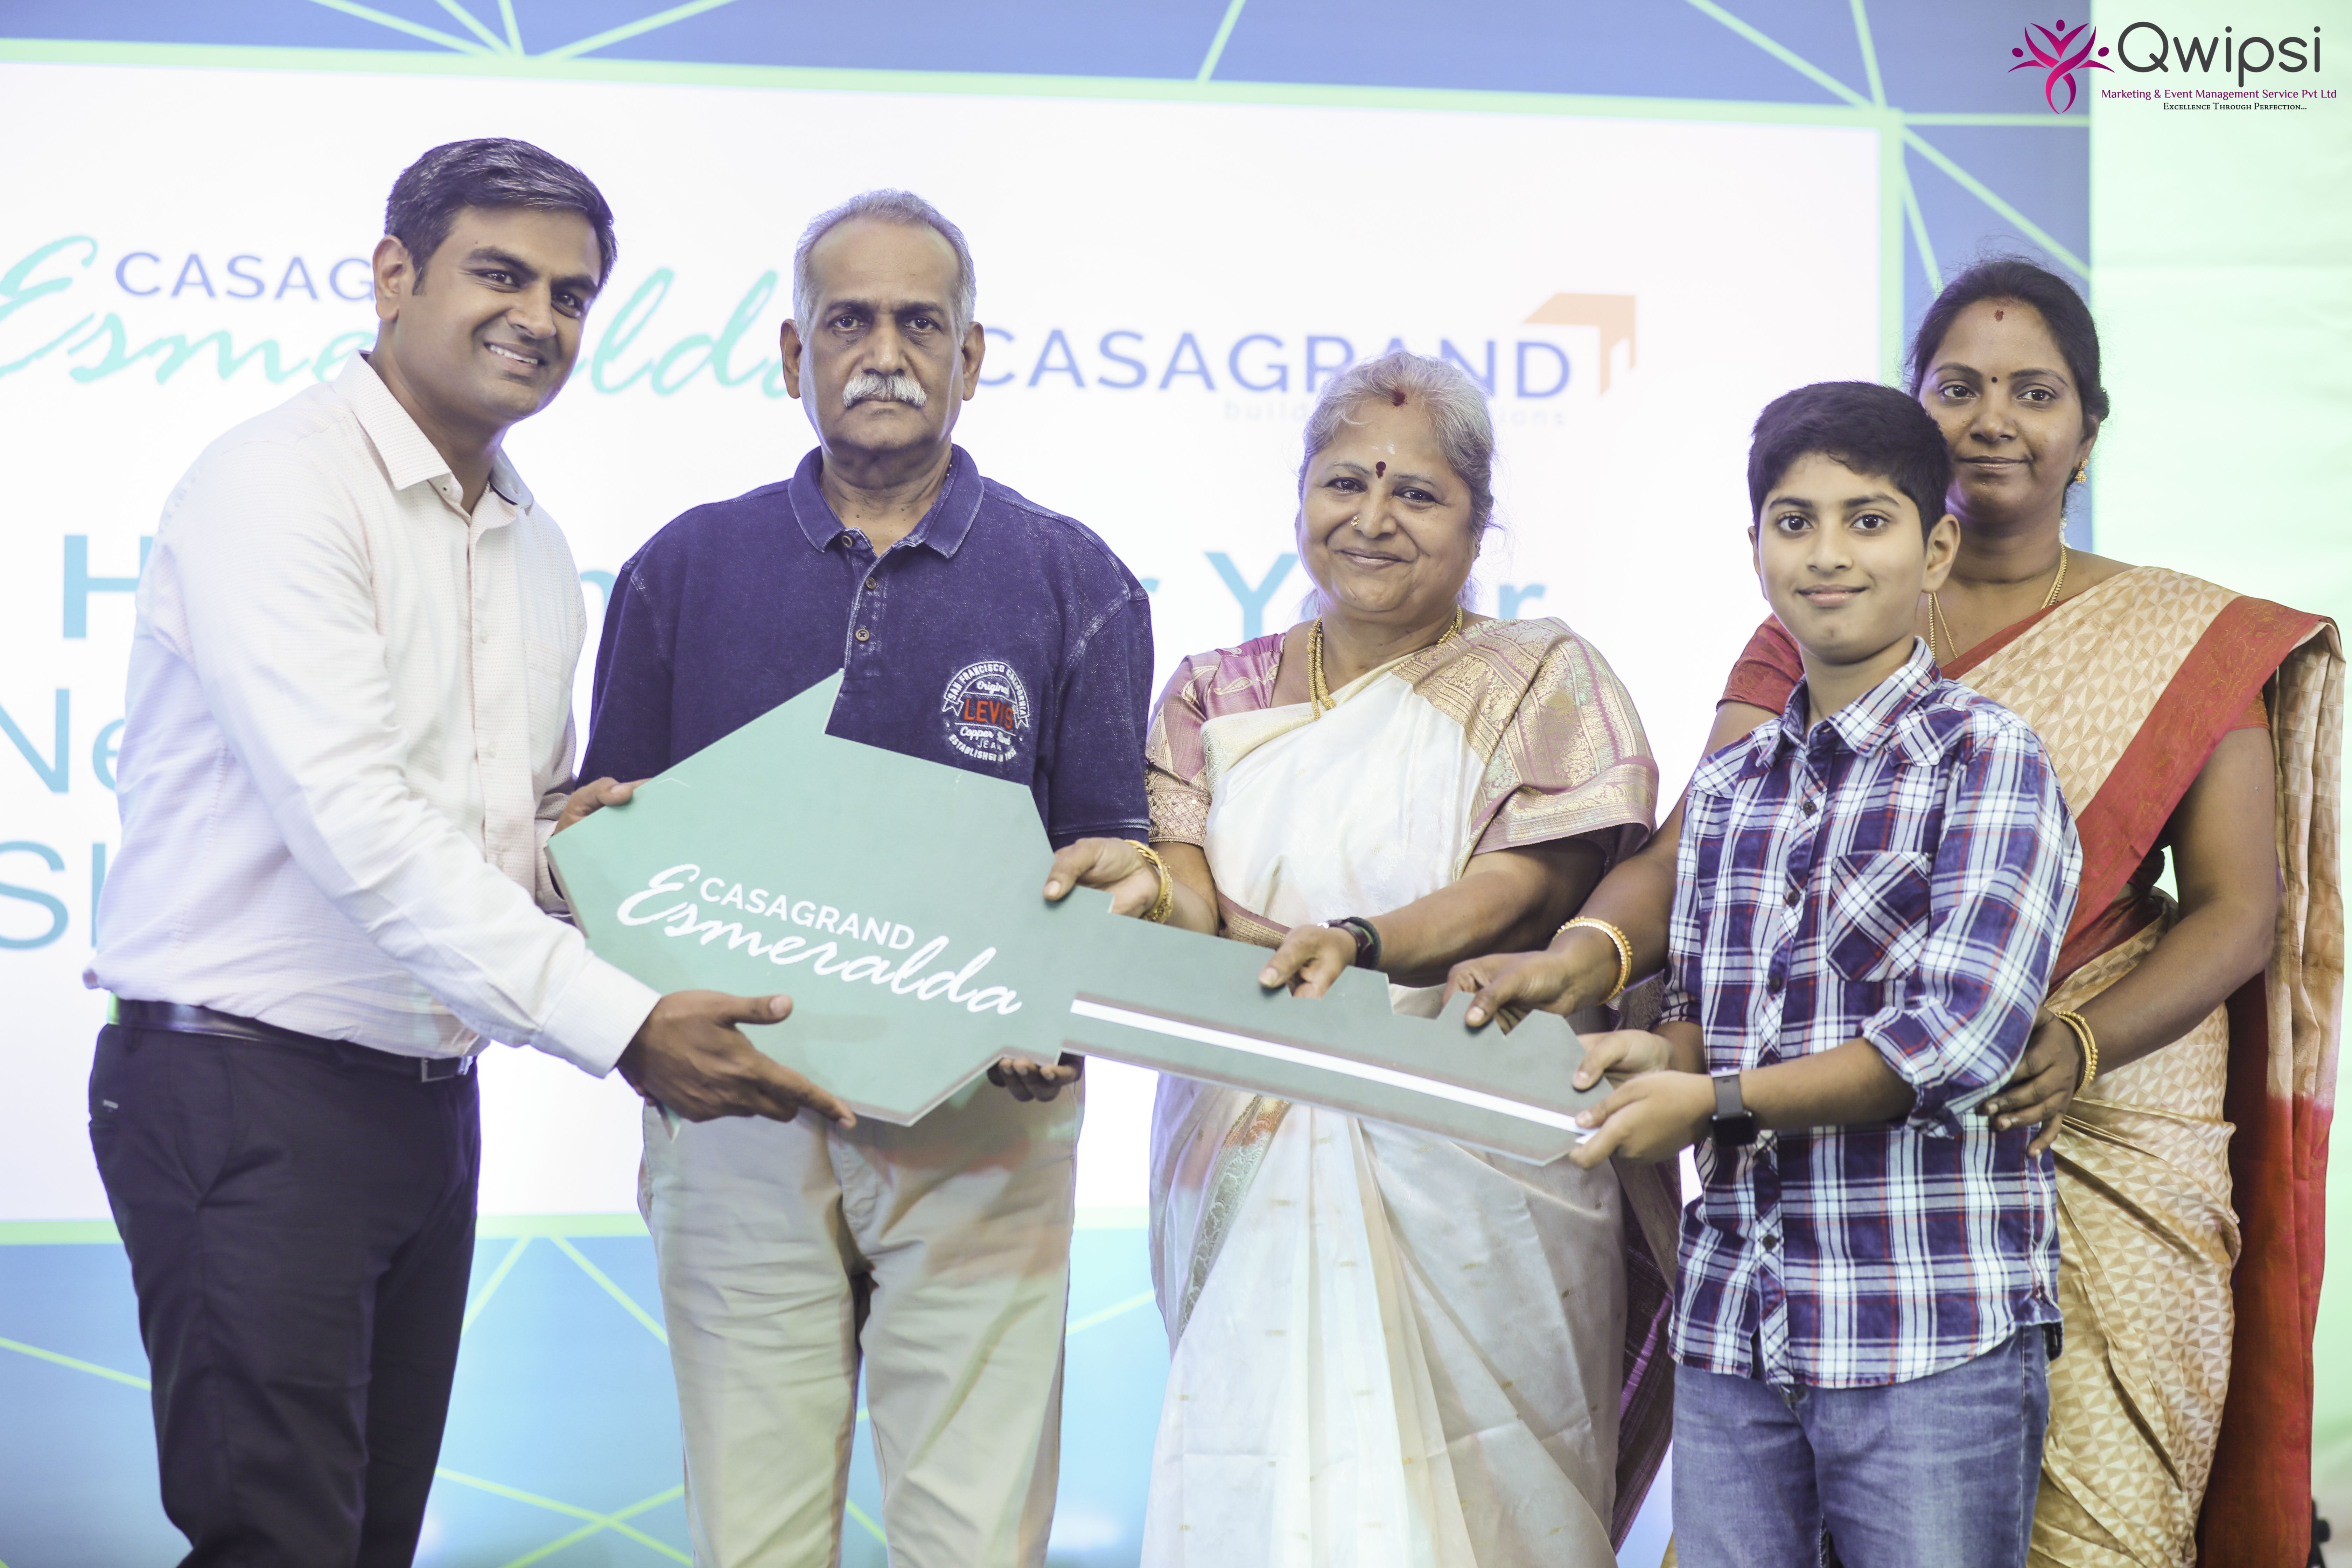 Sathish CG, Director of Bangalore Zone, Casagrand Builder Pvt. Ltd. handing over the key to the homebuyer at the event (2)